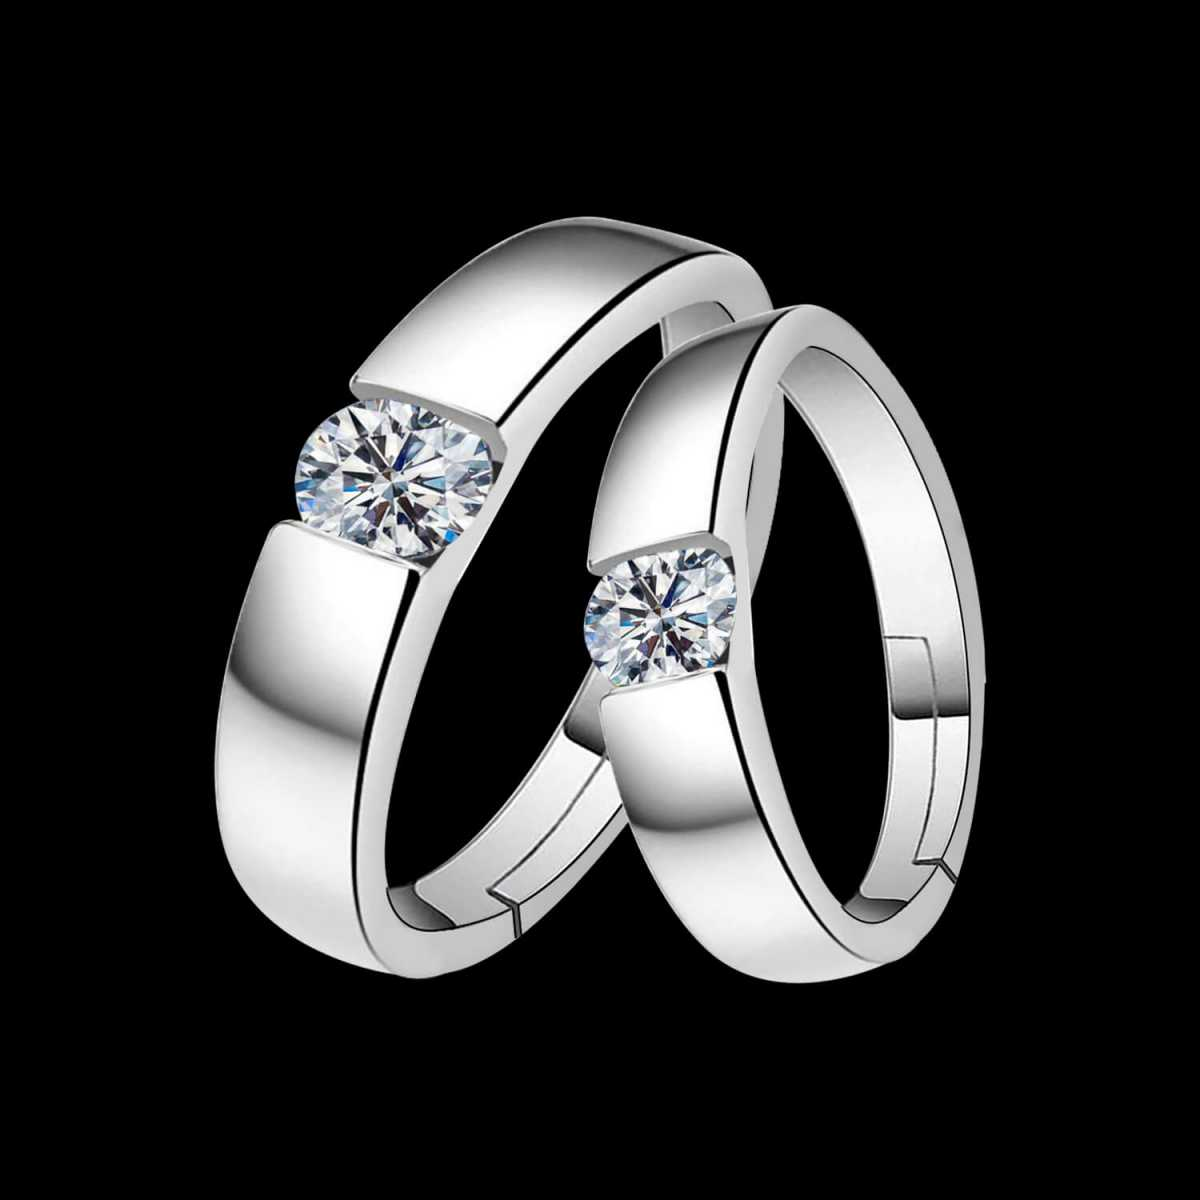 silverplated Same Solitaire His and Her Adjustable proposal Diamond couple ring For Men And Women Jewellery